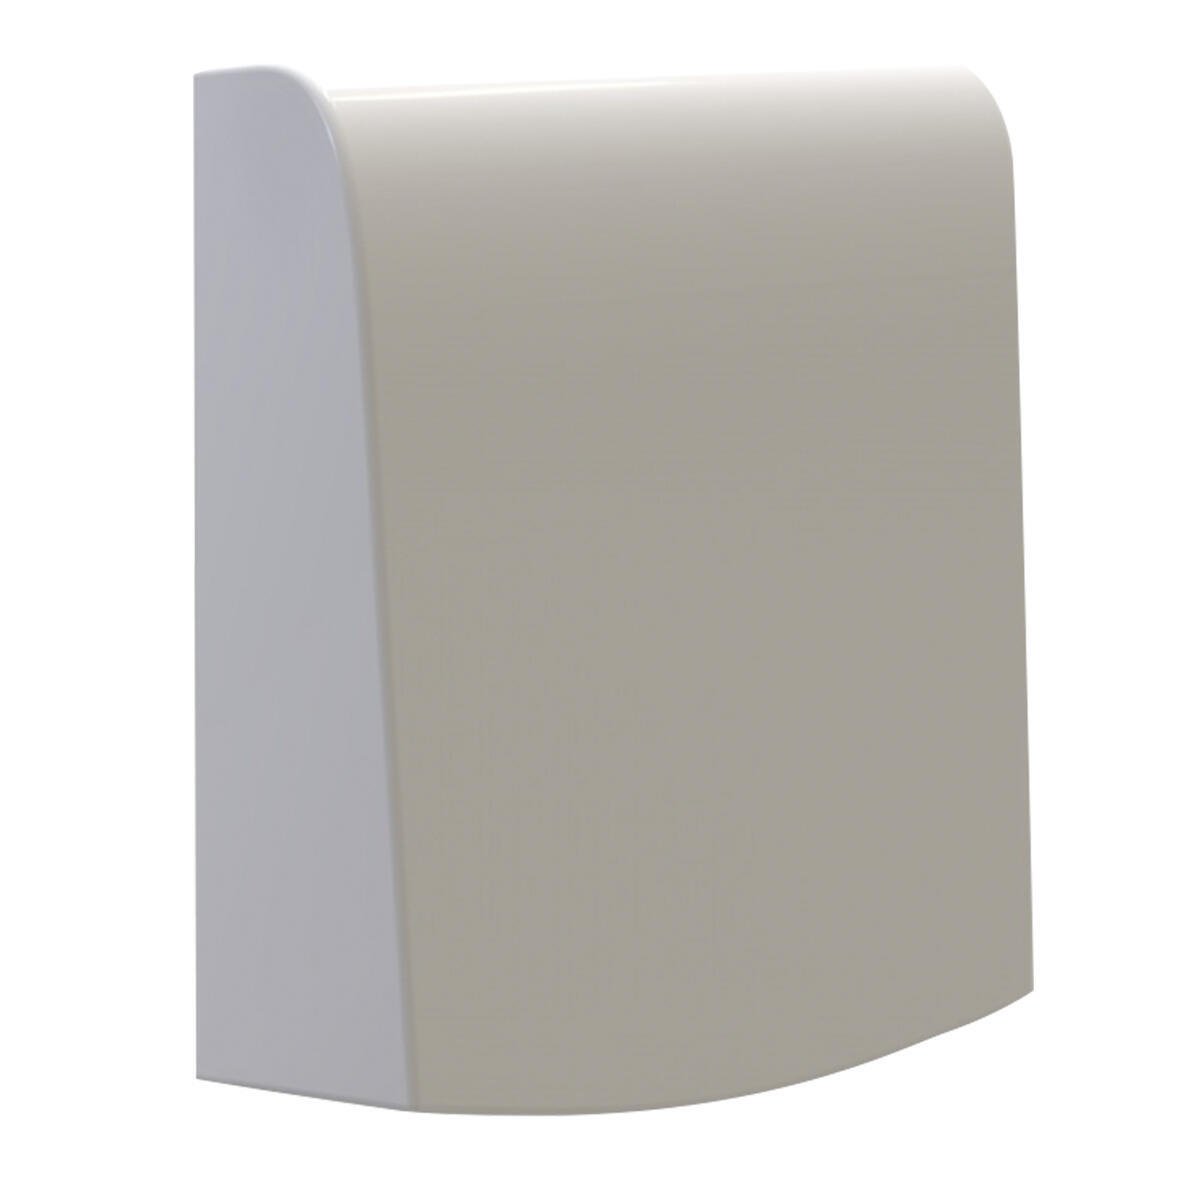 Victories Hand Dryer with HEPA Filter, High Speed Compact Bathroom Hand Dryer for Public Restrooms Commercial and Household, Ultra-Thin and Quiet Design Materials, Energy-Saving Design